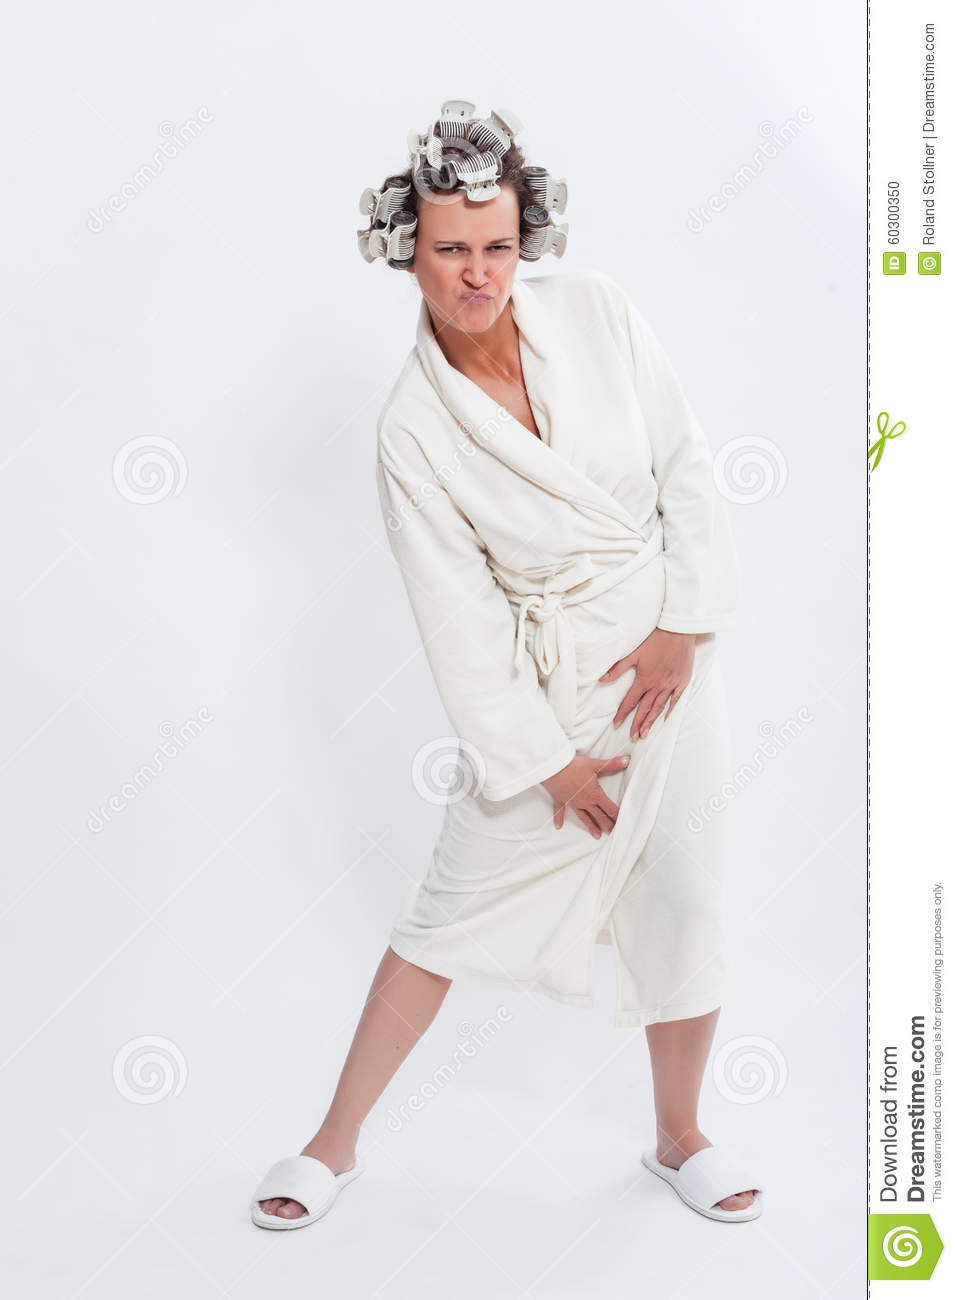 Humorous Full Length Portrait of Woman with Hair in Rollers Wearing White  Bath Robe and Slippers Standing with Pouted Lips and Provocative Facial  Expression ... bd6842951